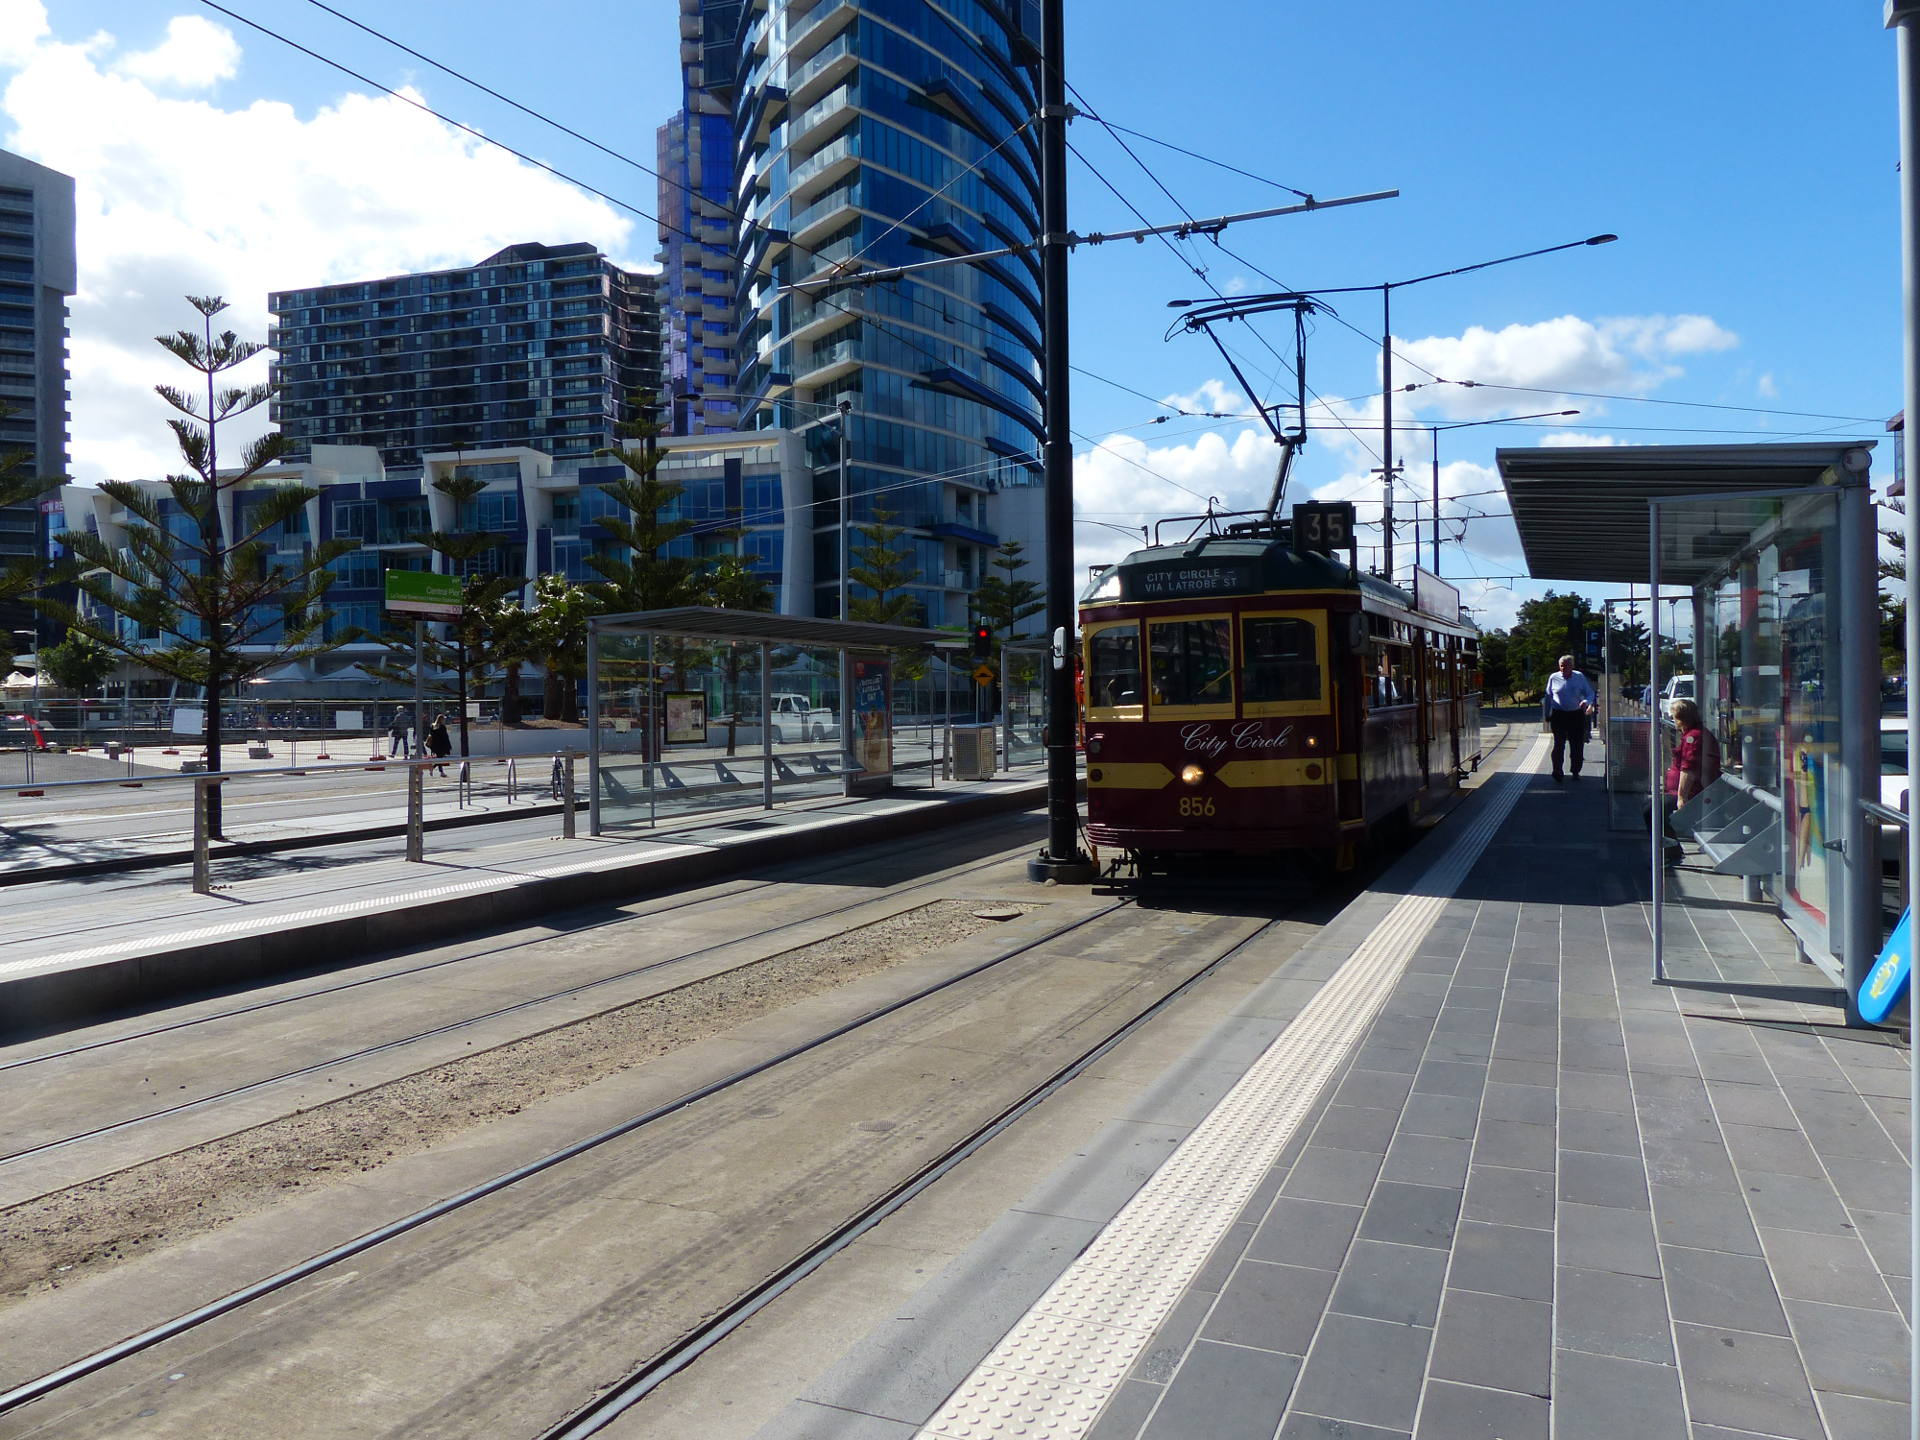 City Circle Tram in den Docklands